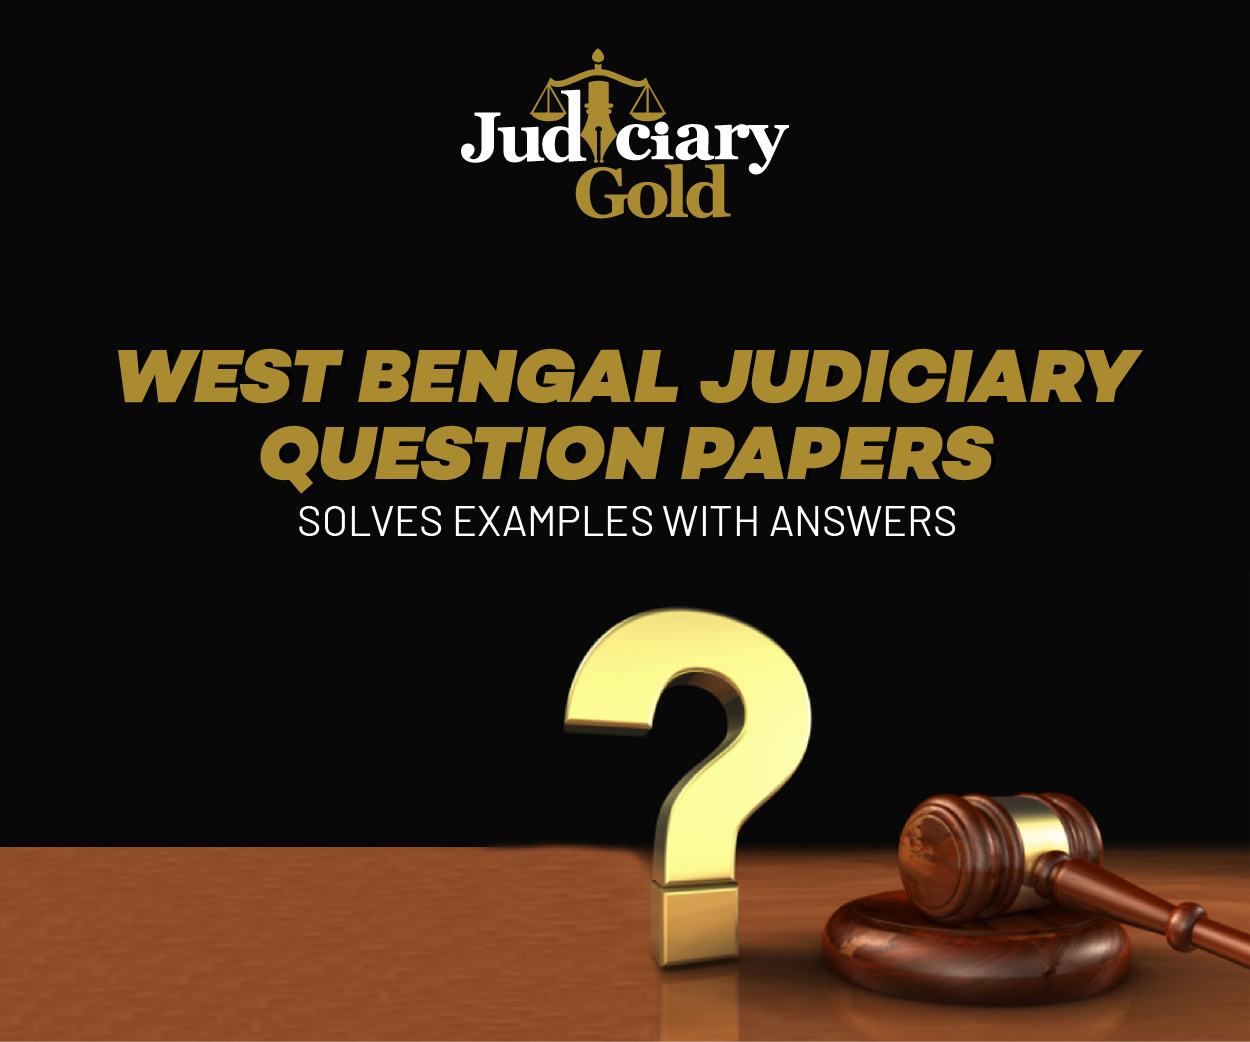 West Bengal Judiciary Question Papers